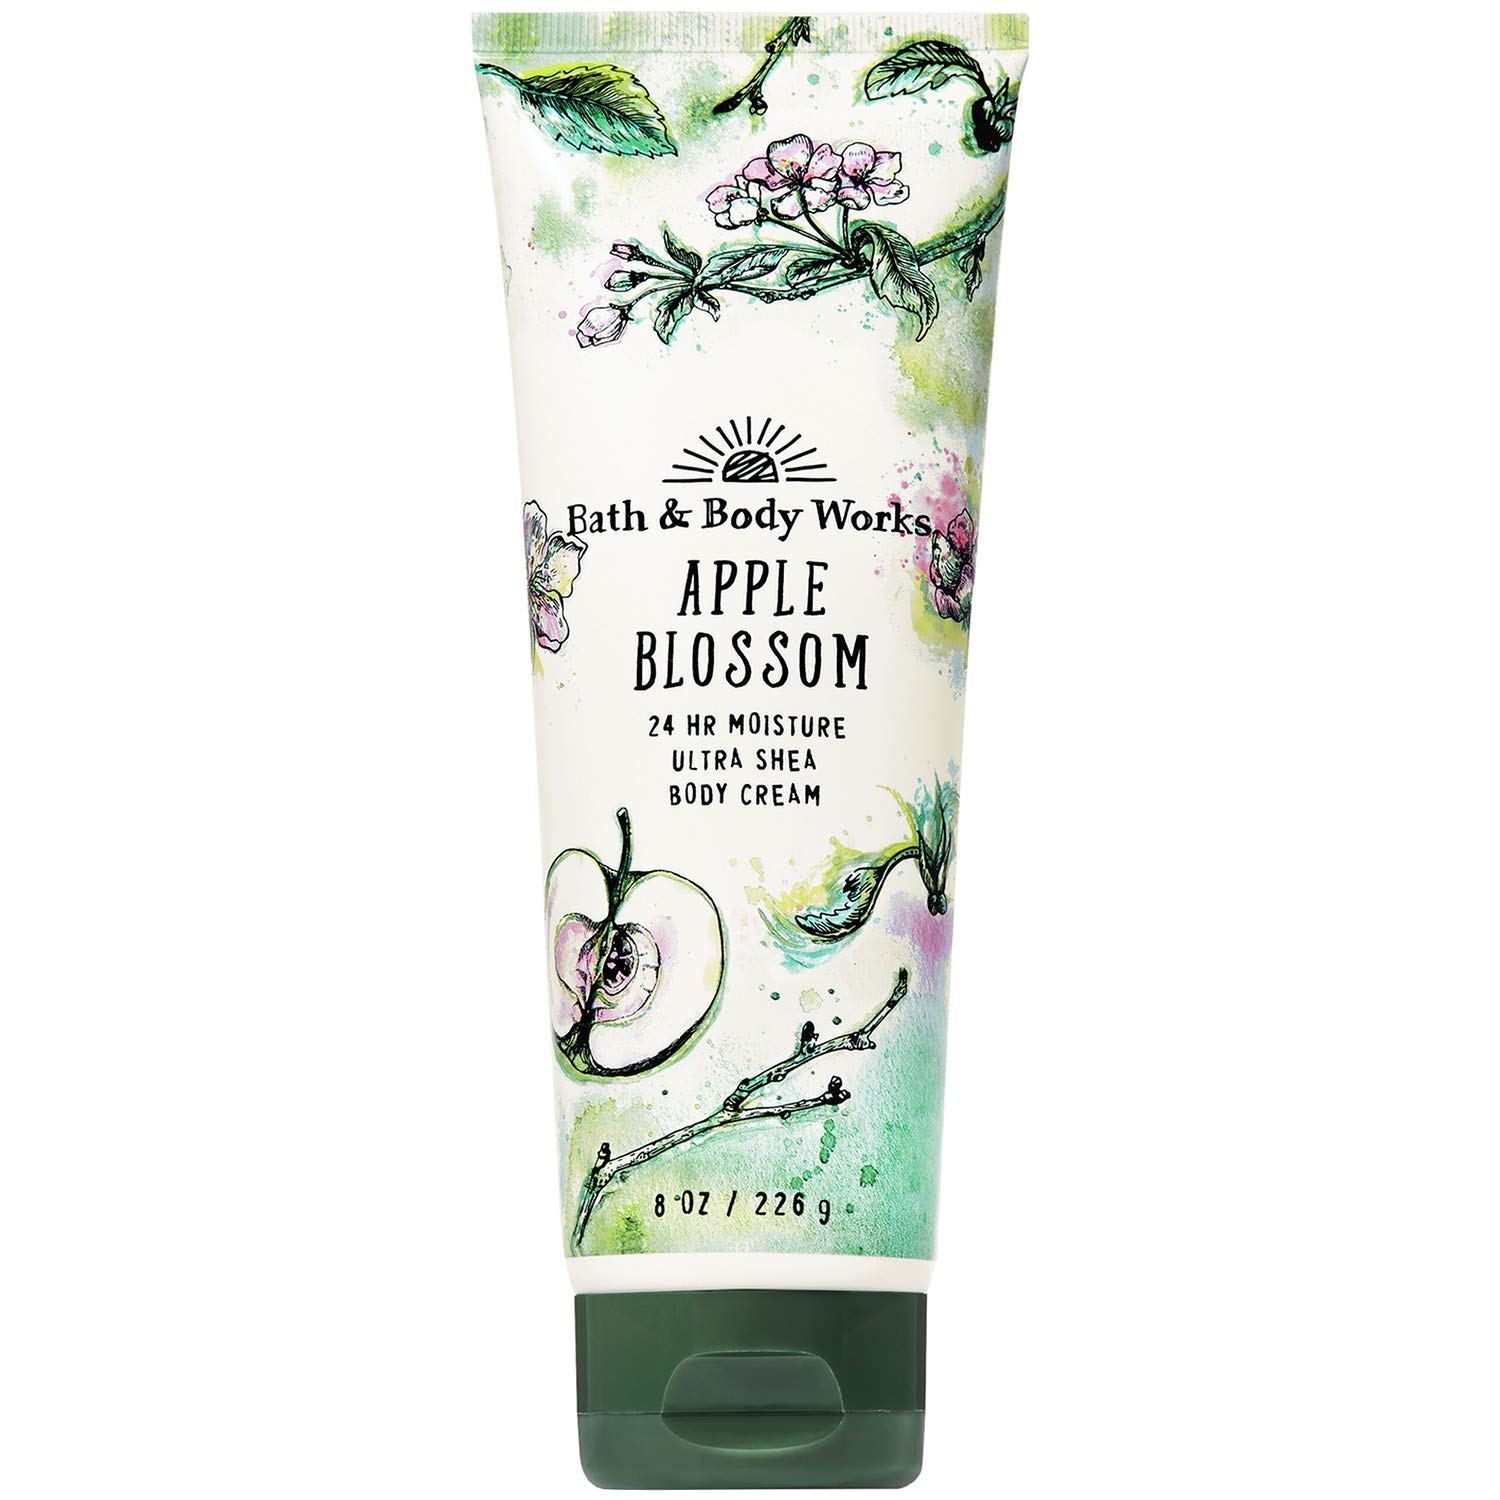 Bath and Body Works Apple Blossom Ultra Shea Body Cream 8 Ounce 2019 Limited Edition